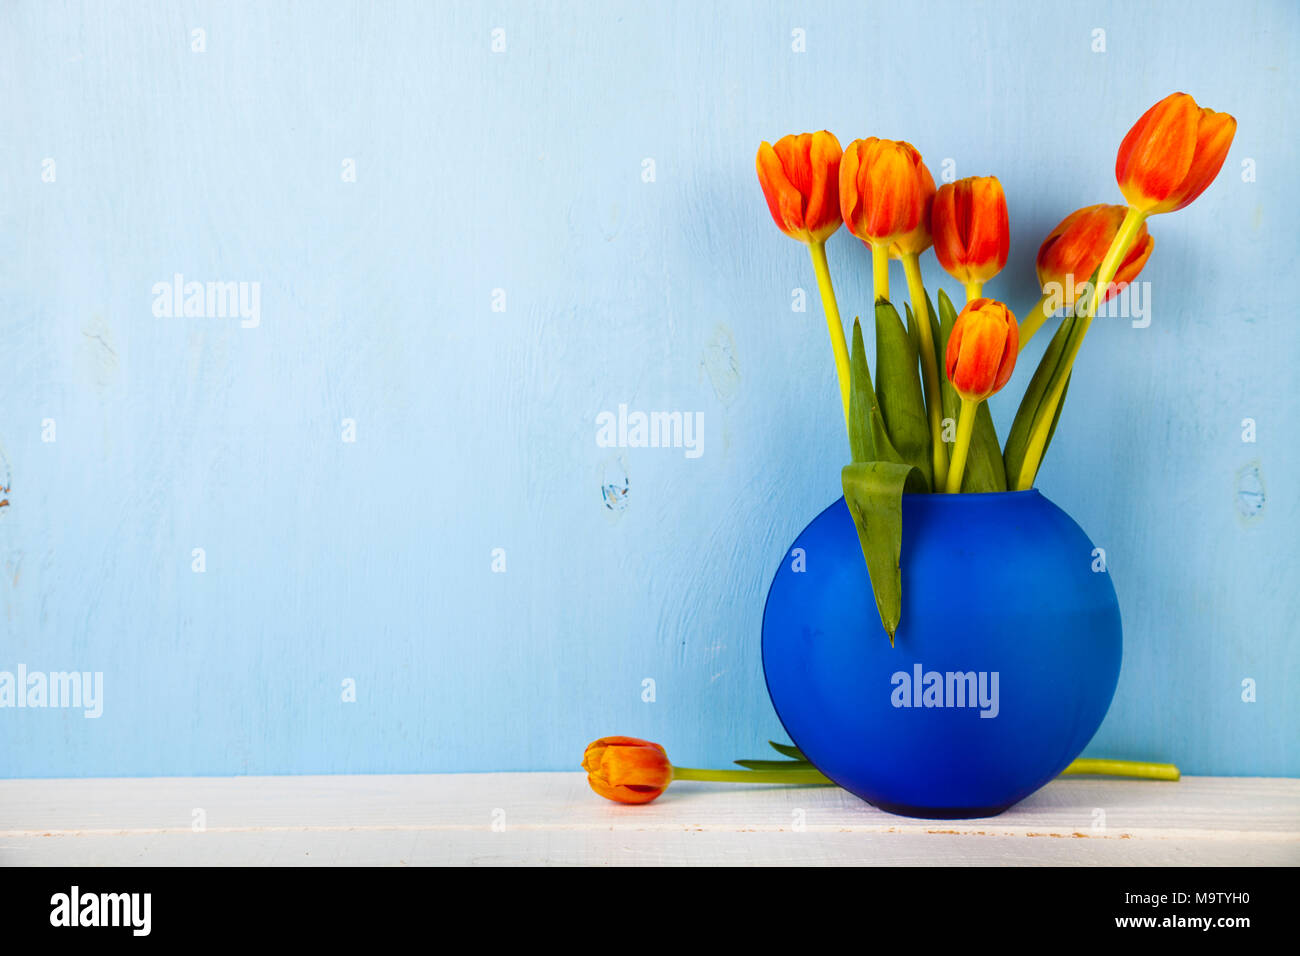 Tulips in a blue vase wooden background. Beautiful spring bouquet. - Stock Image